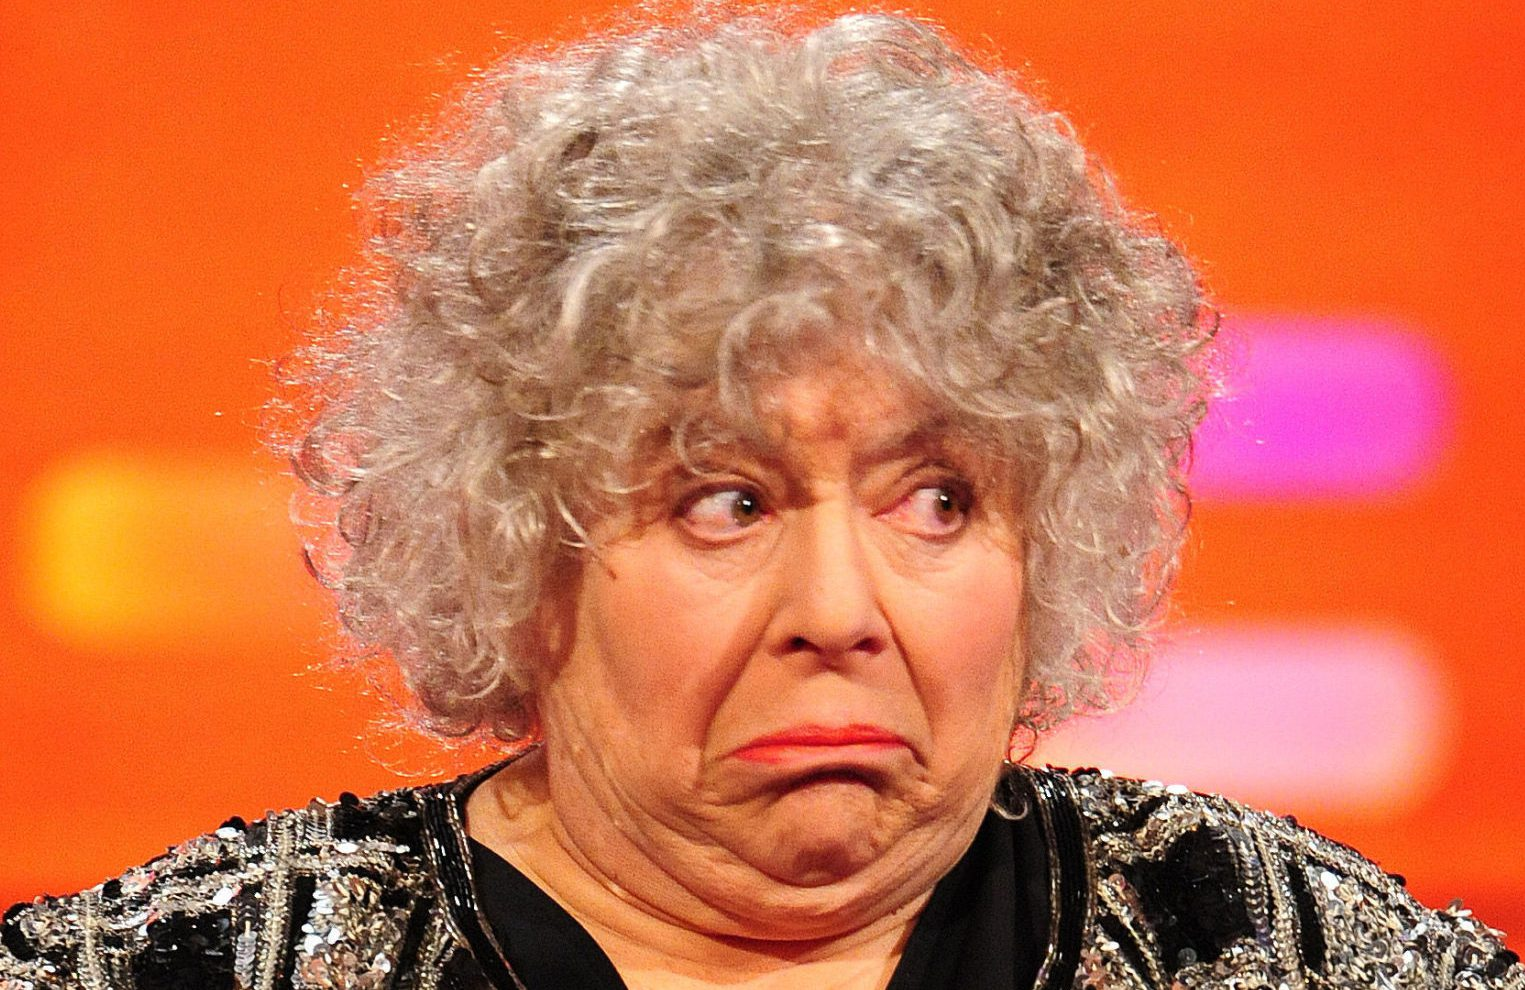 Miriam Margolyes 'humiliates' black fan at Harry Potter signing by 'offering him a discount'